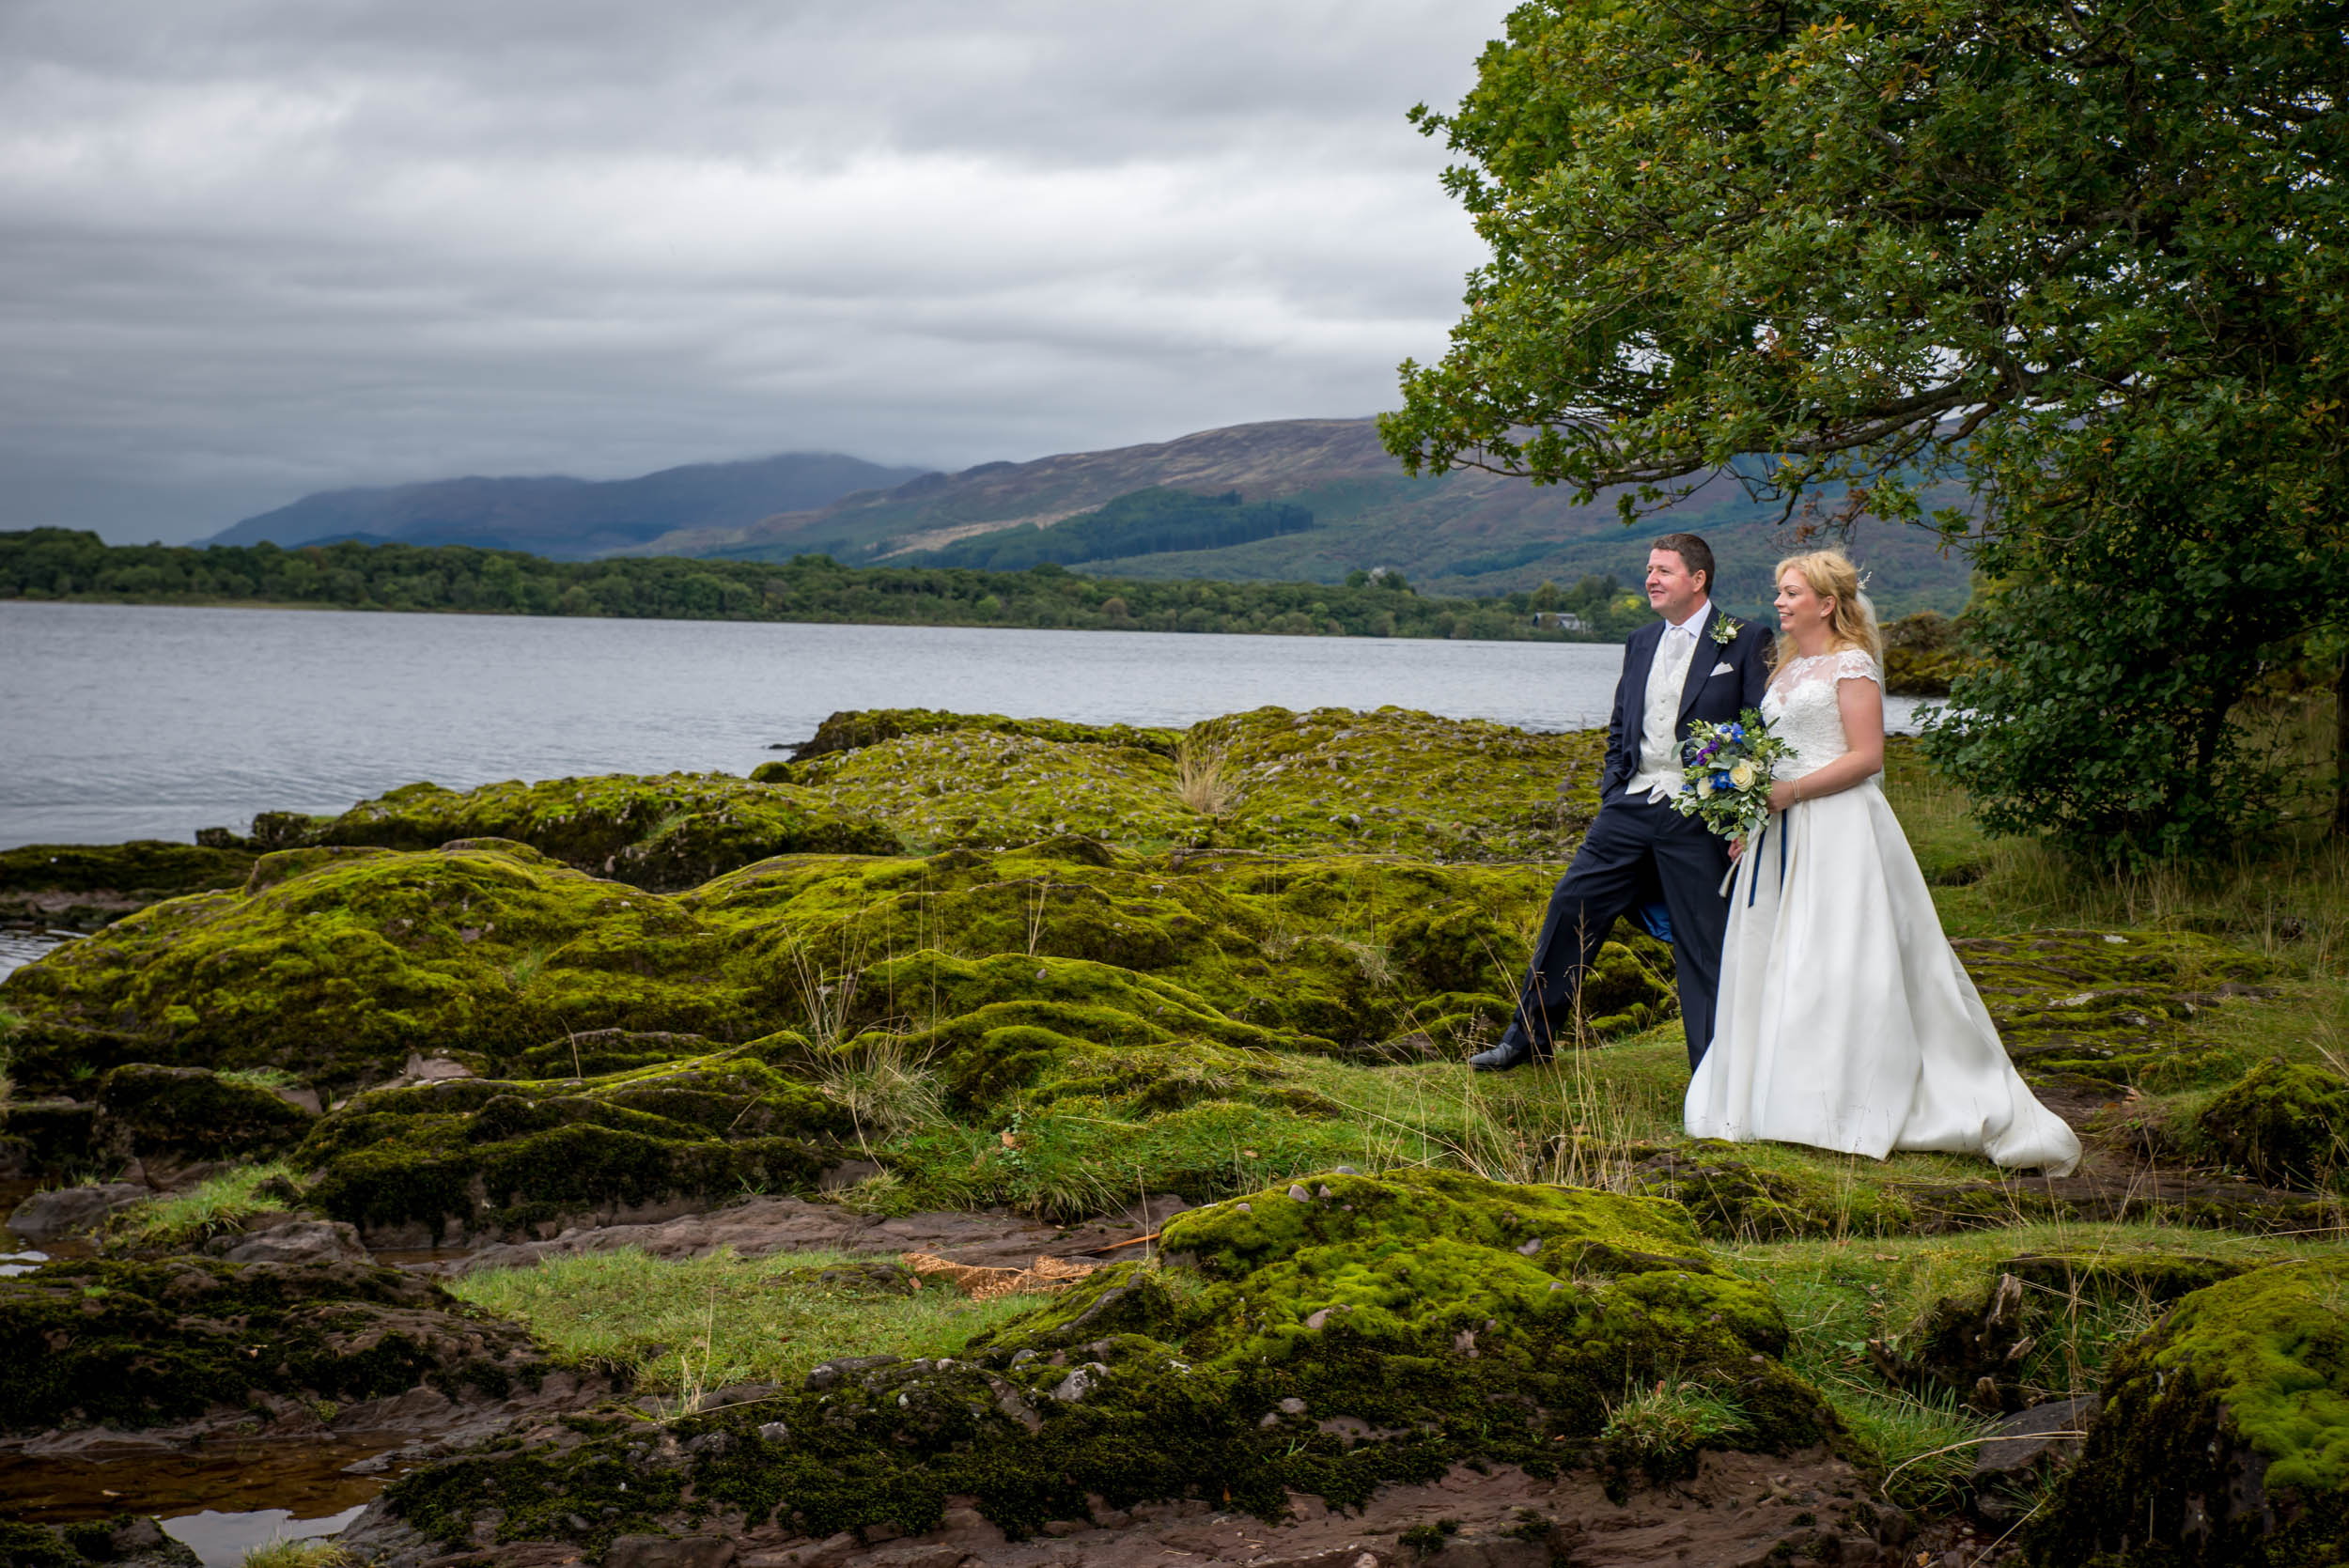 Wedding Photography at Rowardennan